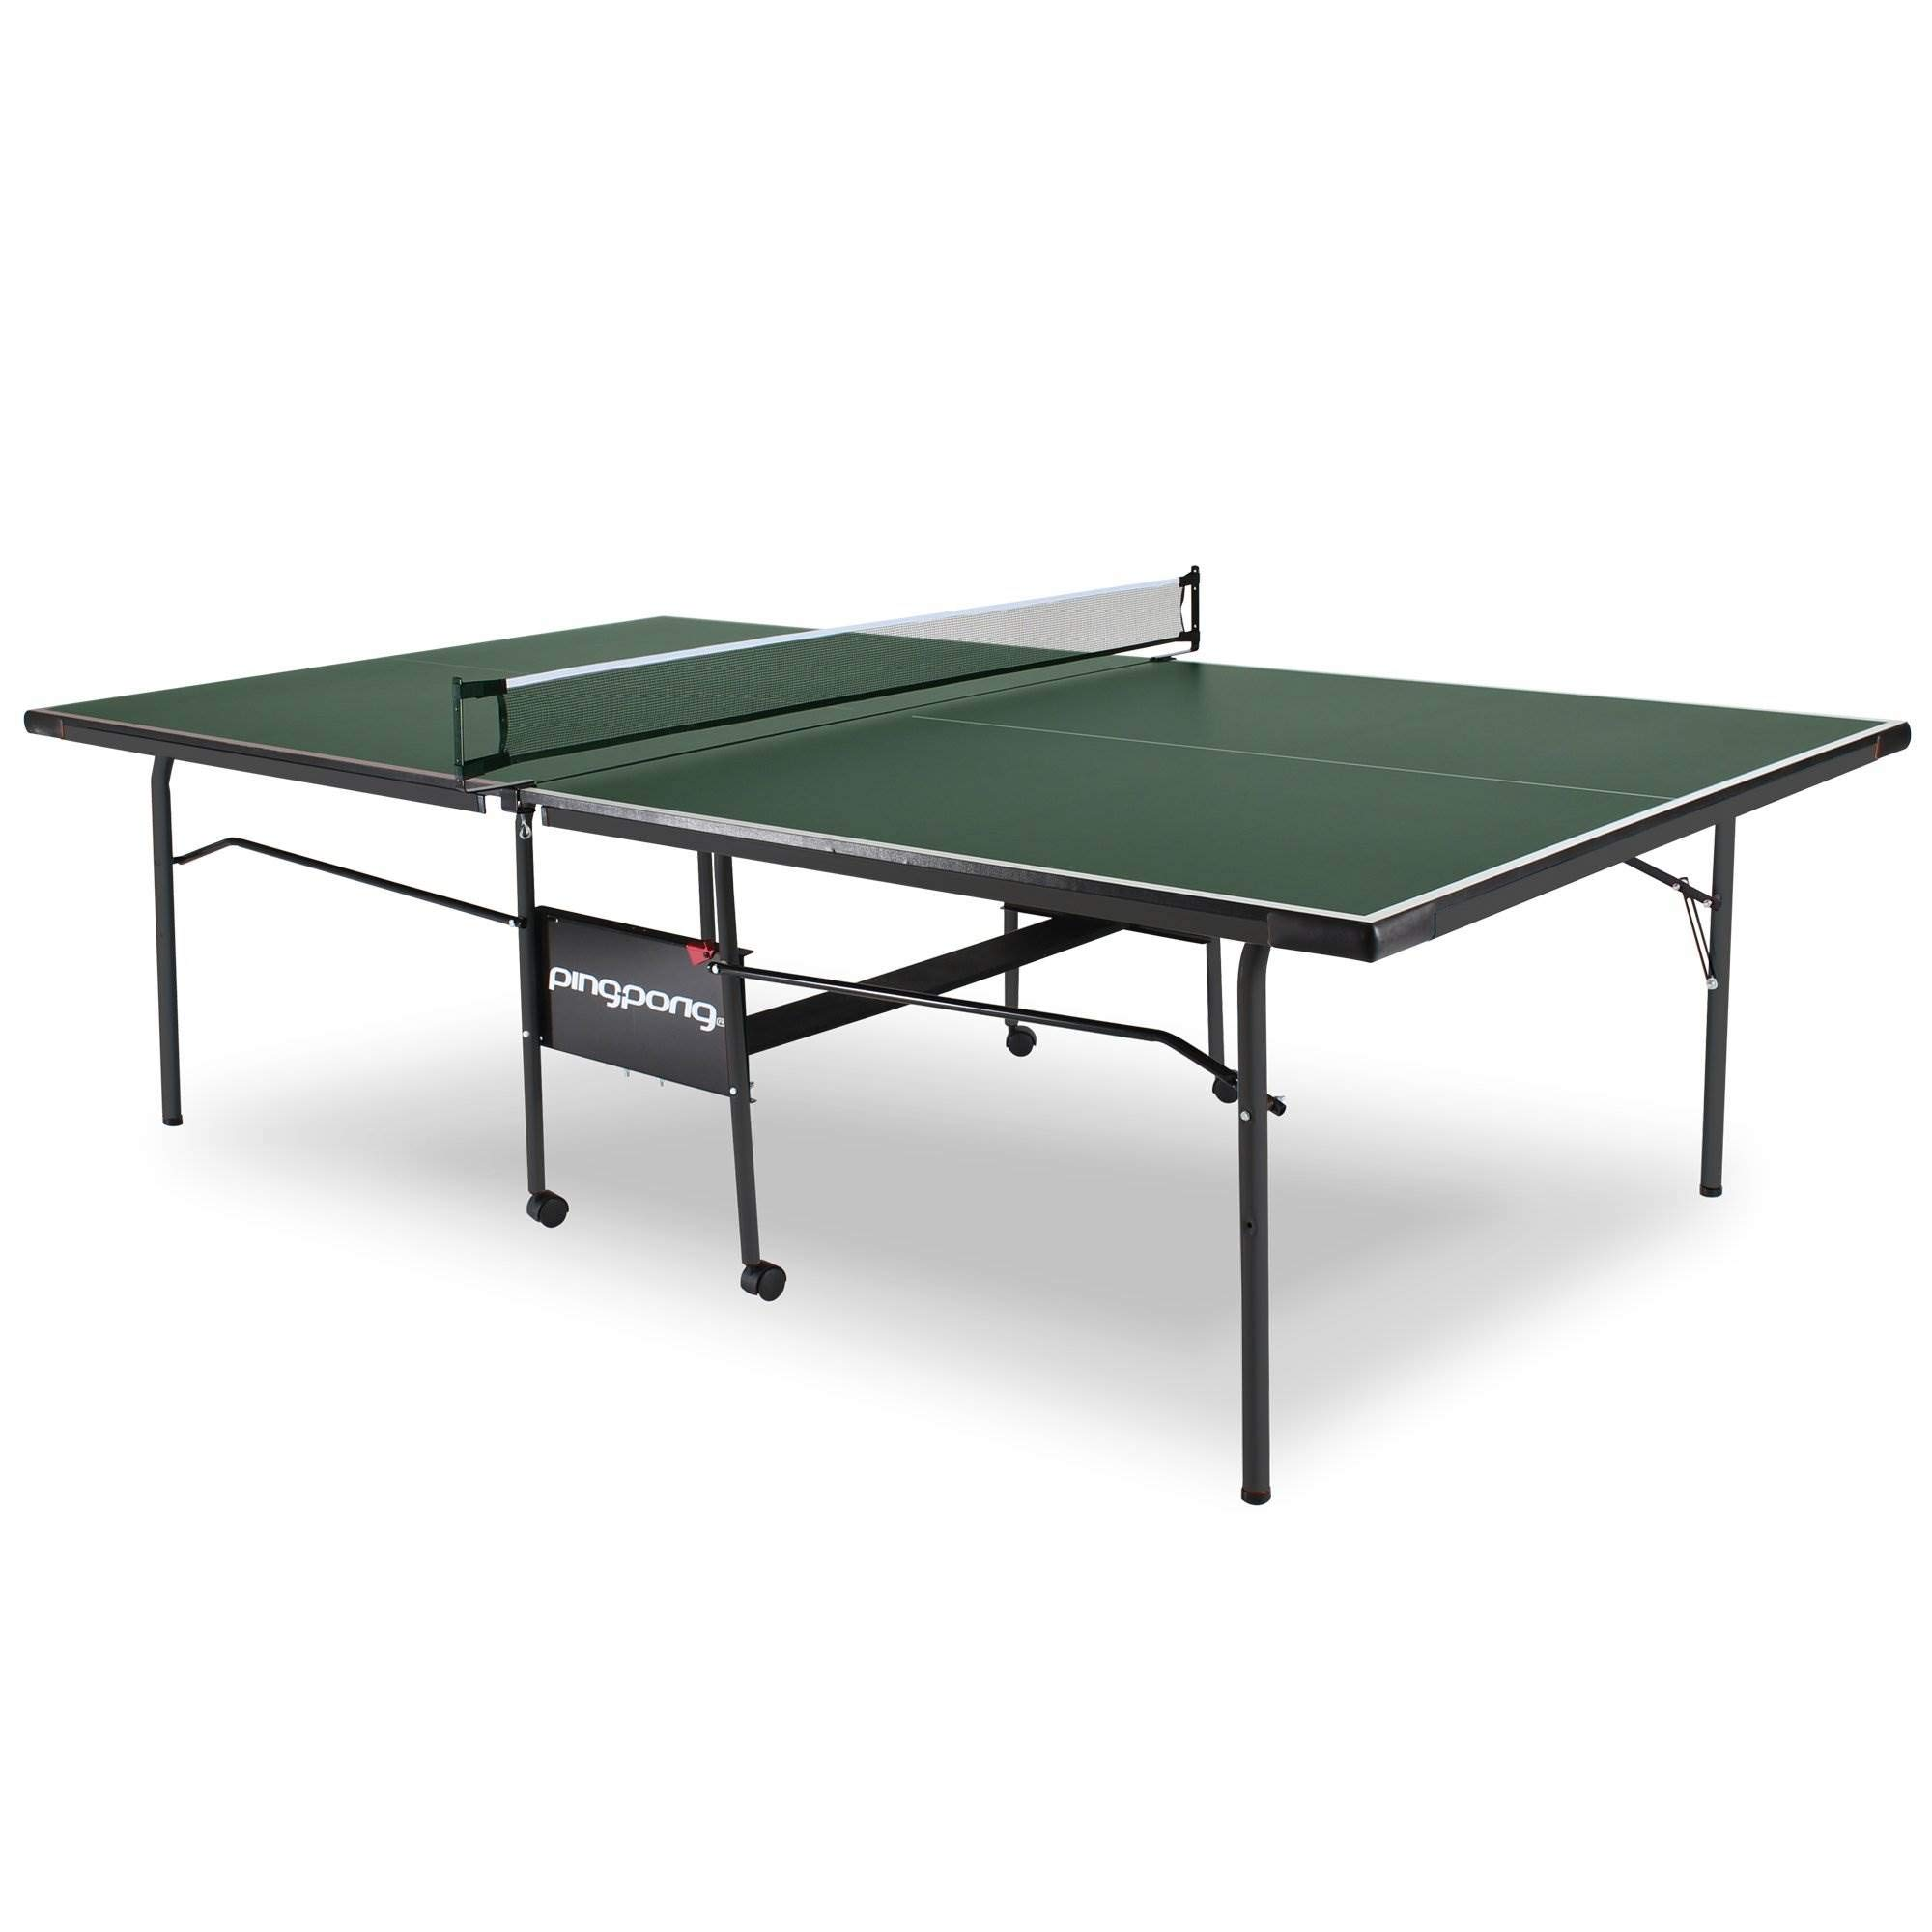 Ping Pong Fury Table Foldable Regulation Size Tennis Table with Caster Wheels by ping pong